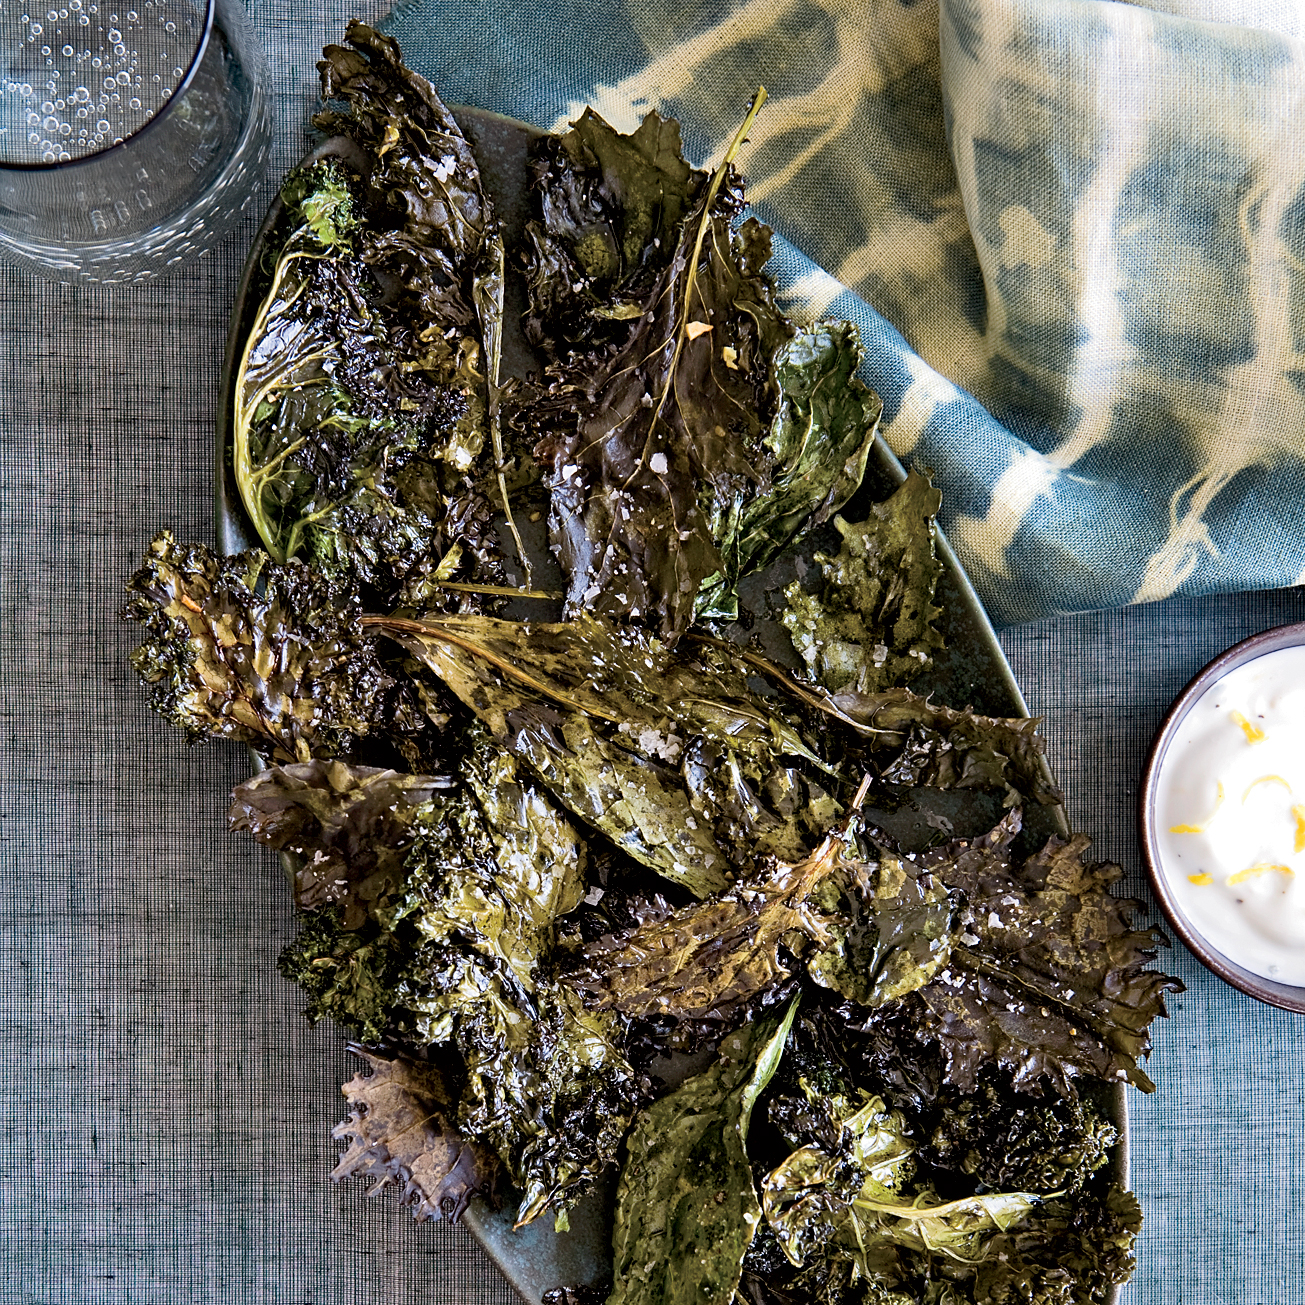 201010-r-crispy-kale-with-dip.jpg